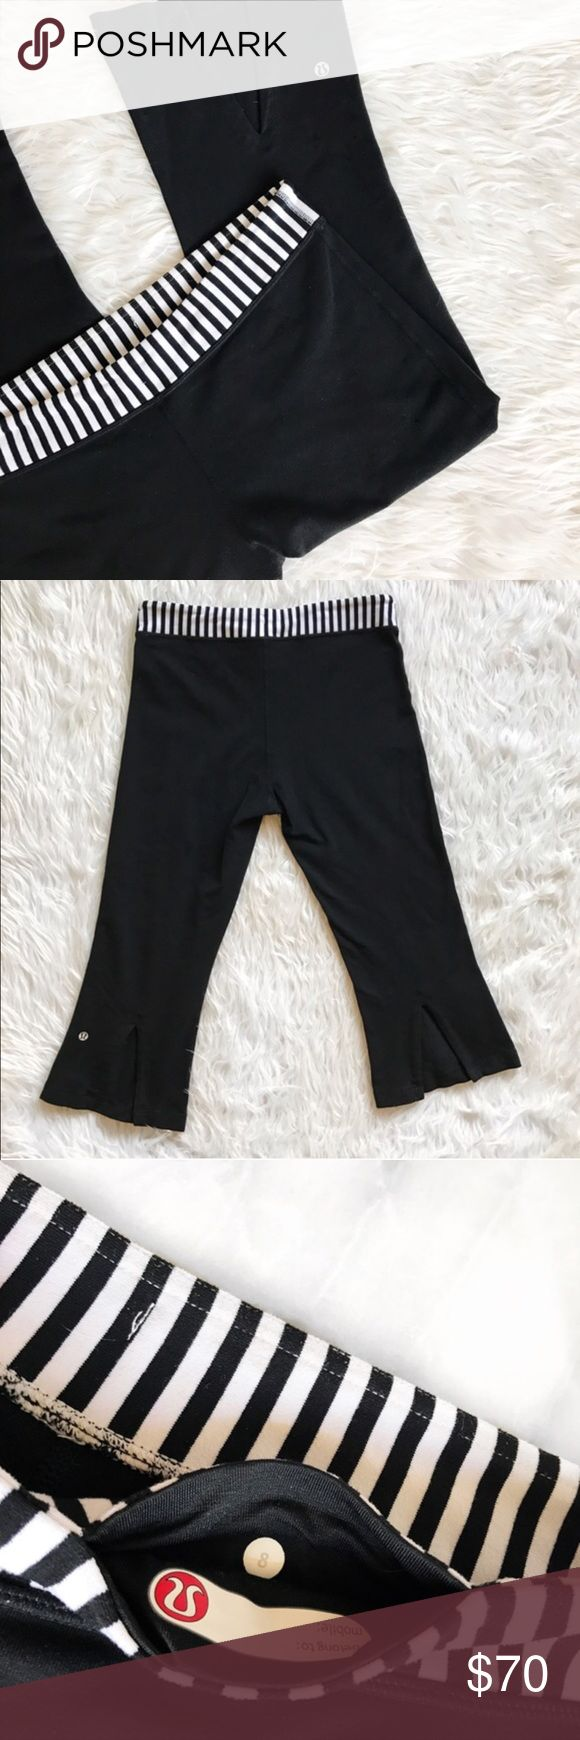 """Lululemon striped crop pants 21"""" inseam.  Used condition. lululemon athletica Pants Ankle & Cropped"""